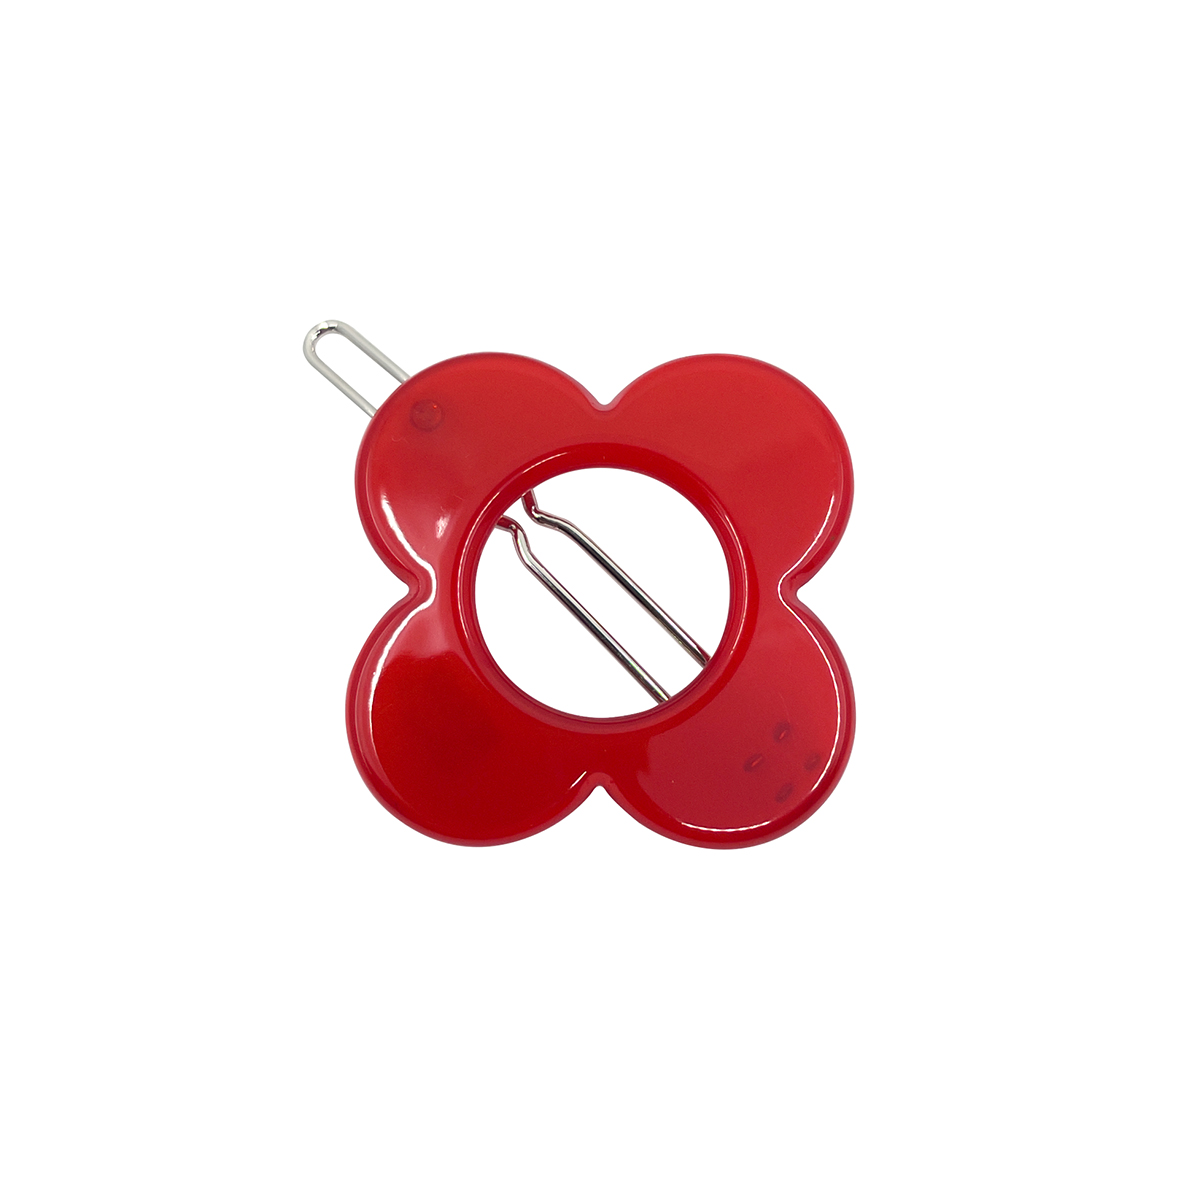 Red Hanover hair clip by Inky and Mole